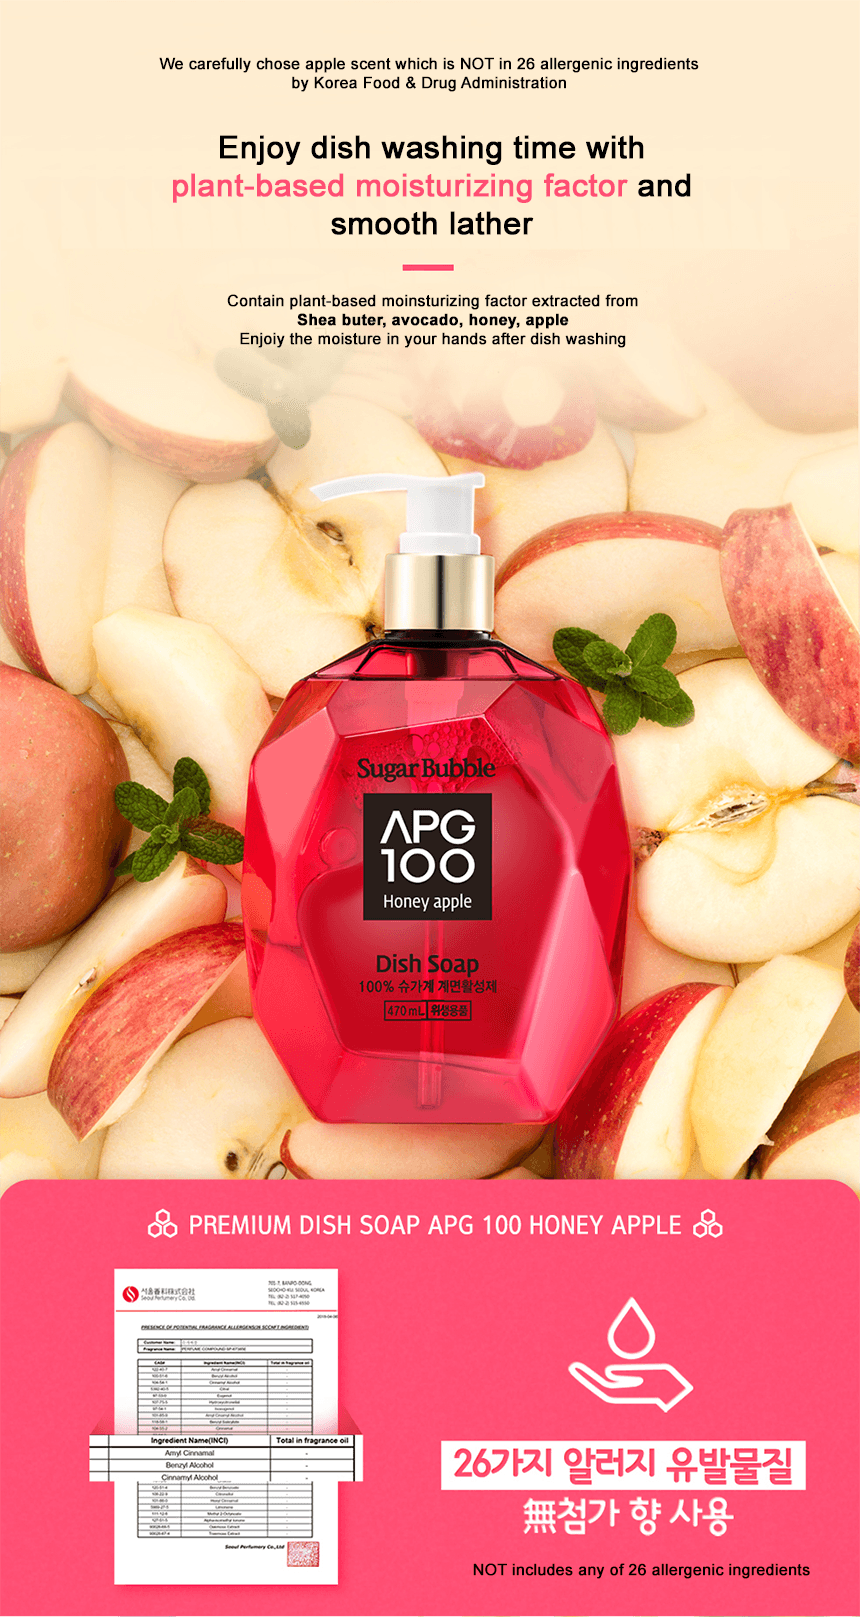 Sugar Bubble APG100 Moisturizing factor and allergy tested